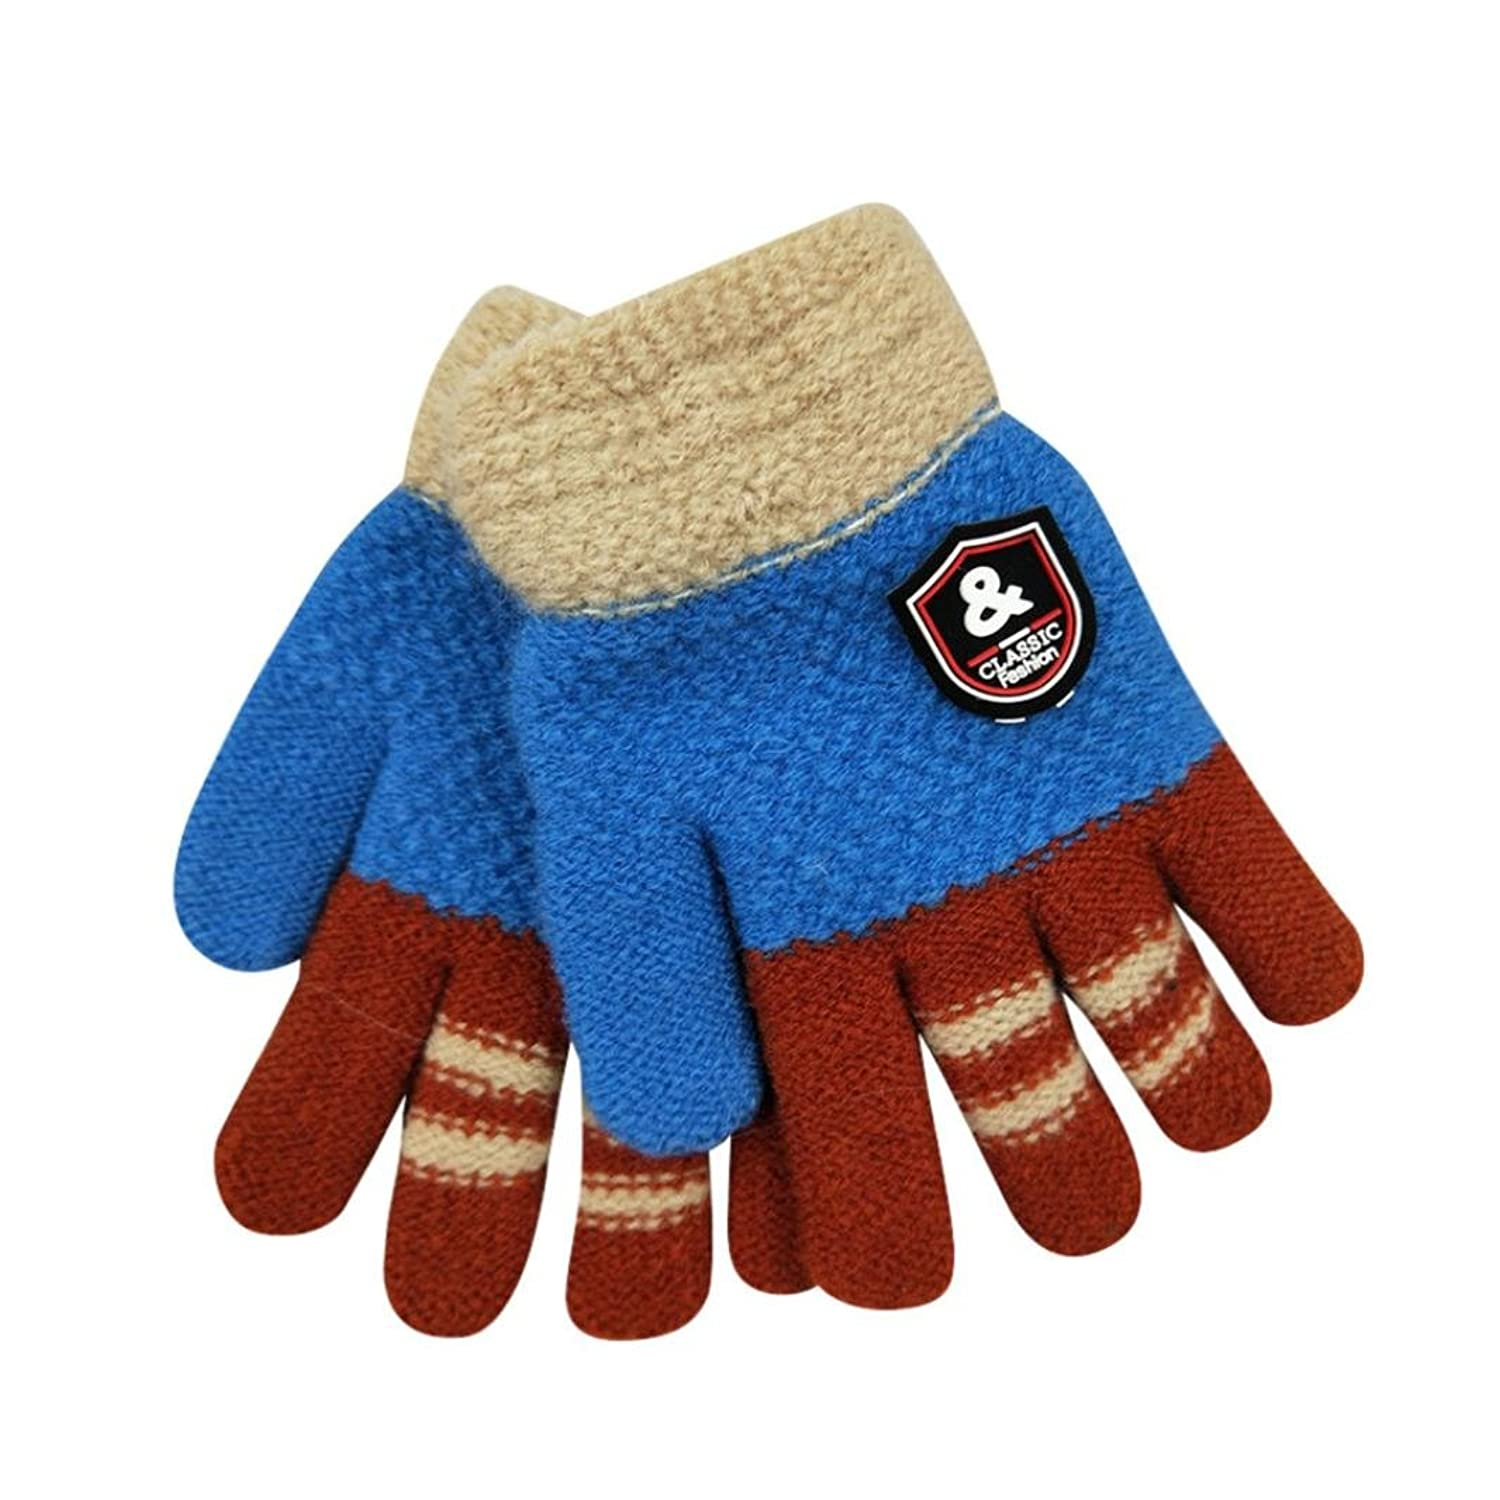 hot sell Infant Baby Cute Thicken Gloves, Palarn Toddler Magic Knitting wool Insulated Winter Warm Mittens for sale